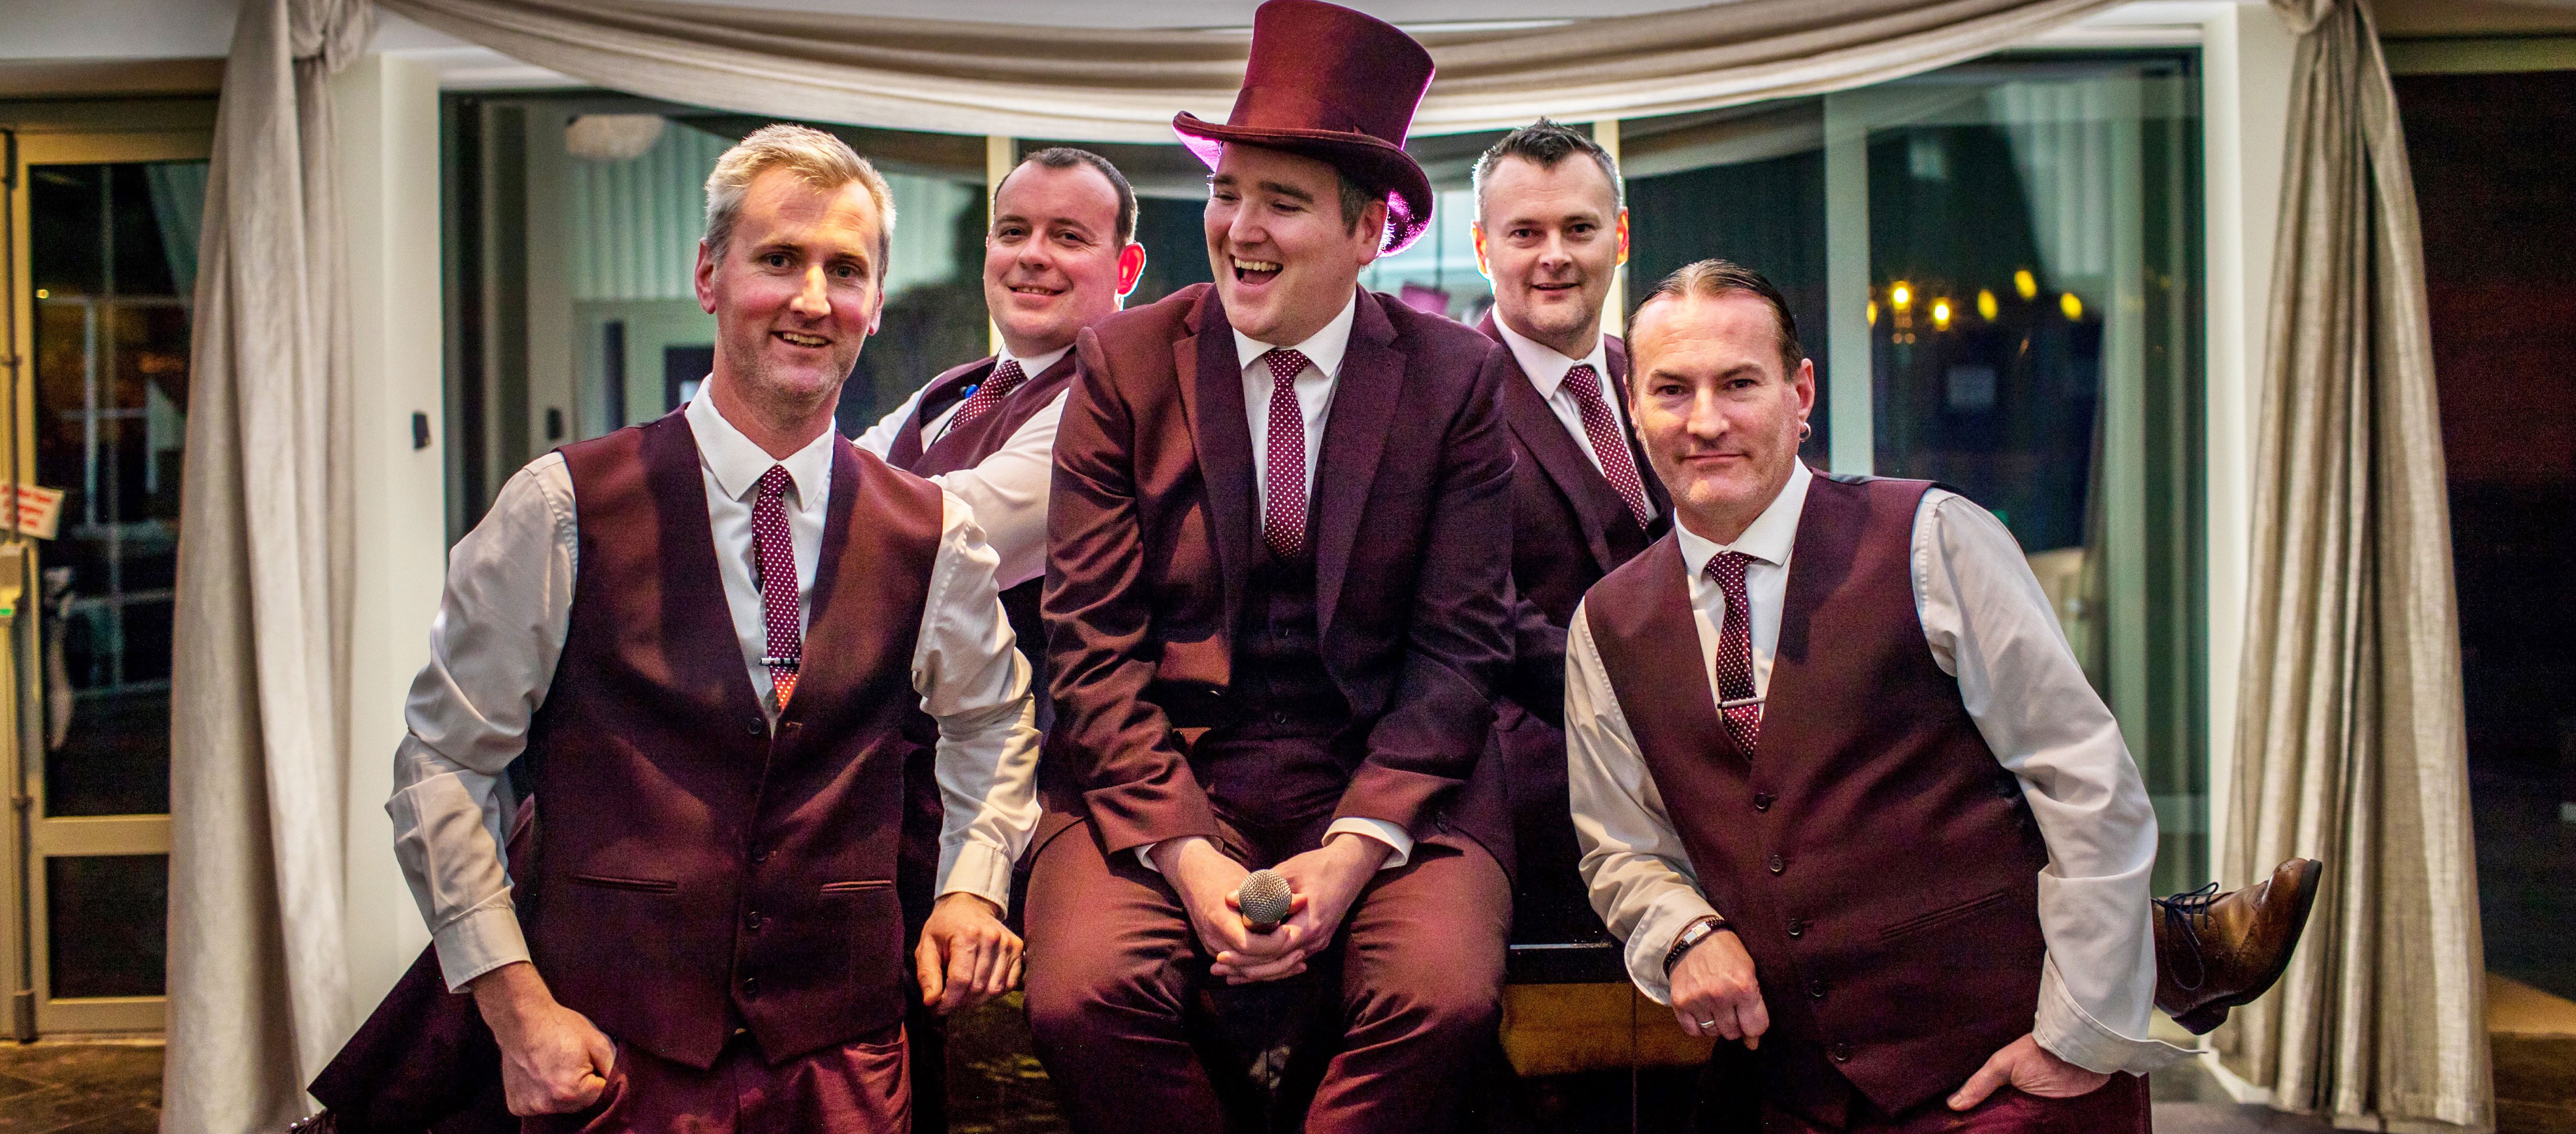 2019 year for girls- Wedding irish band how to wear